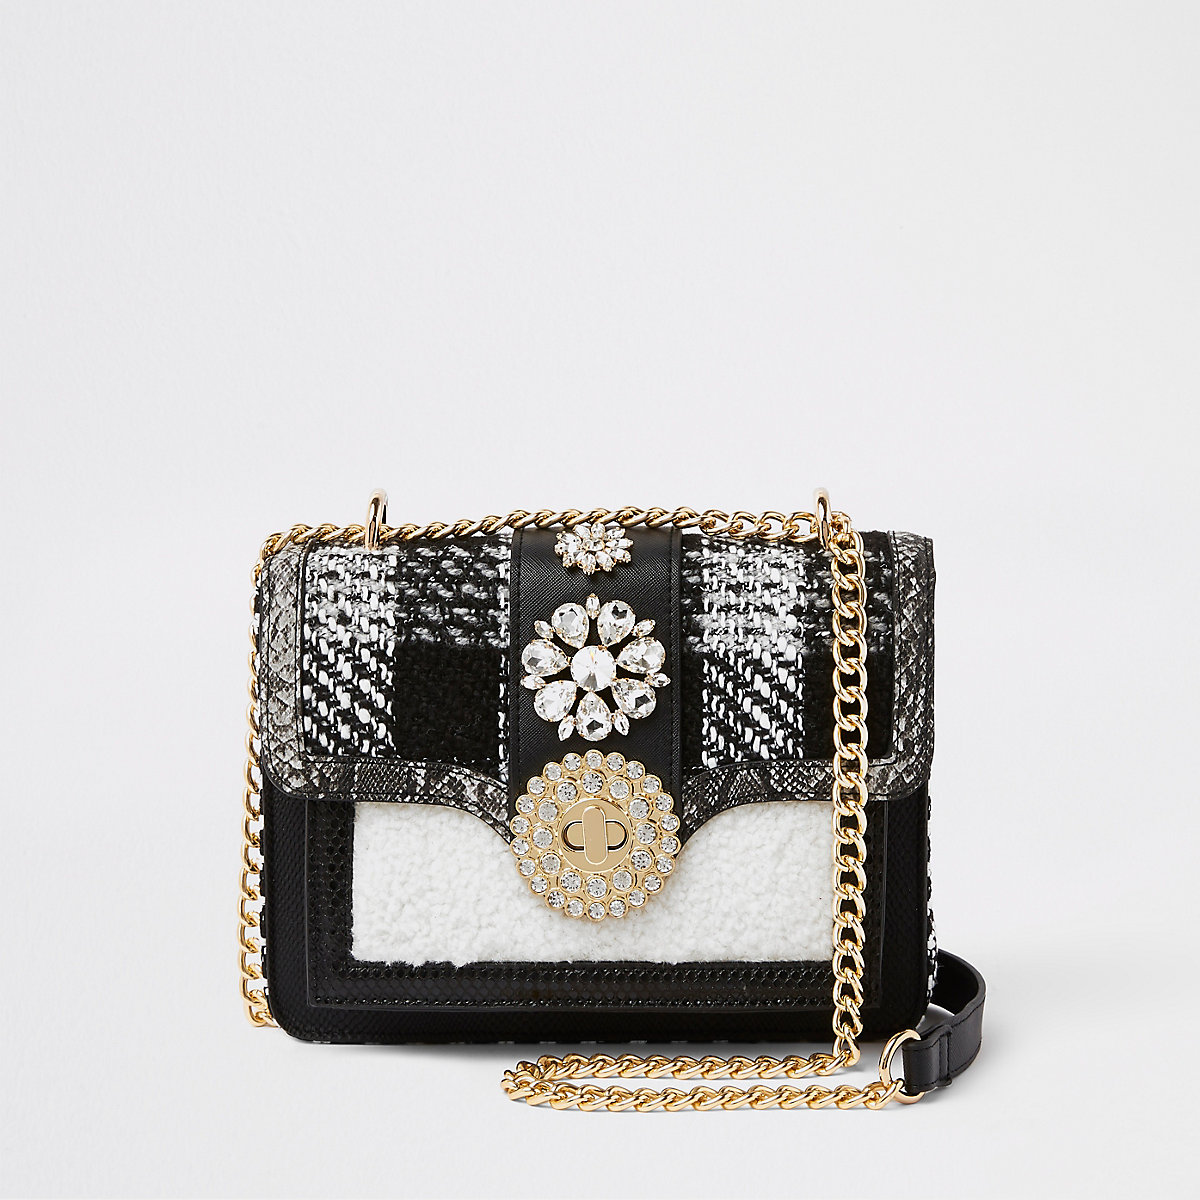 Black and white embellished cross body bag